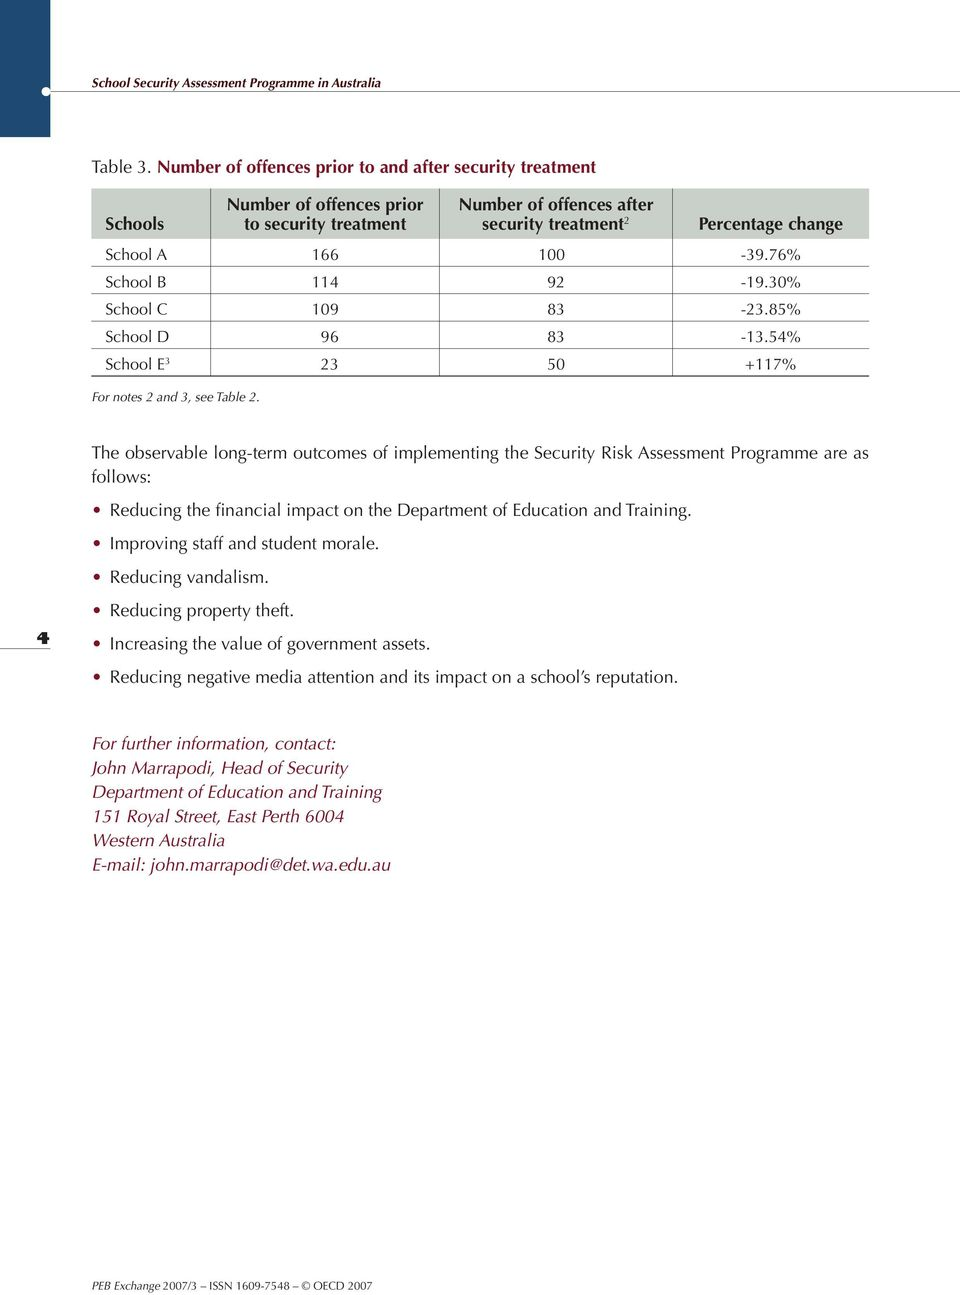 54% School E 3 23 50 +117% The observable long-term outcomes of implementing the Security Risk Assessment Programme are as follows: Reducing the financial impact on the Department of Education and